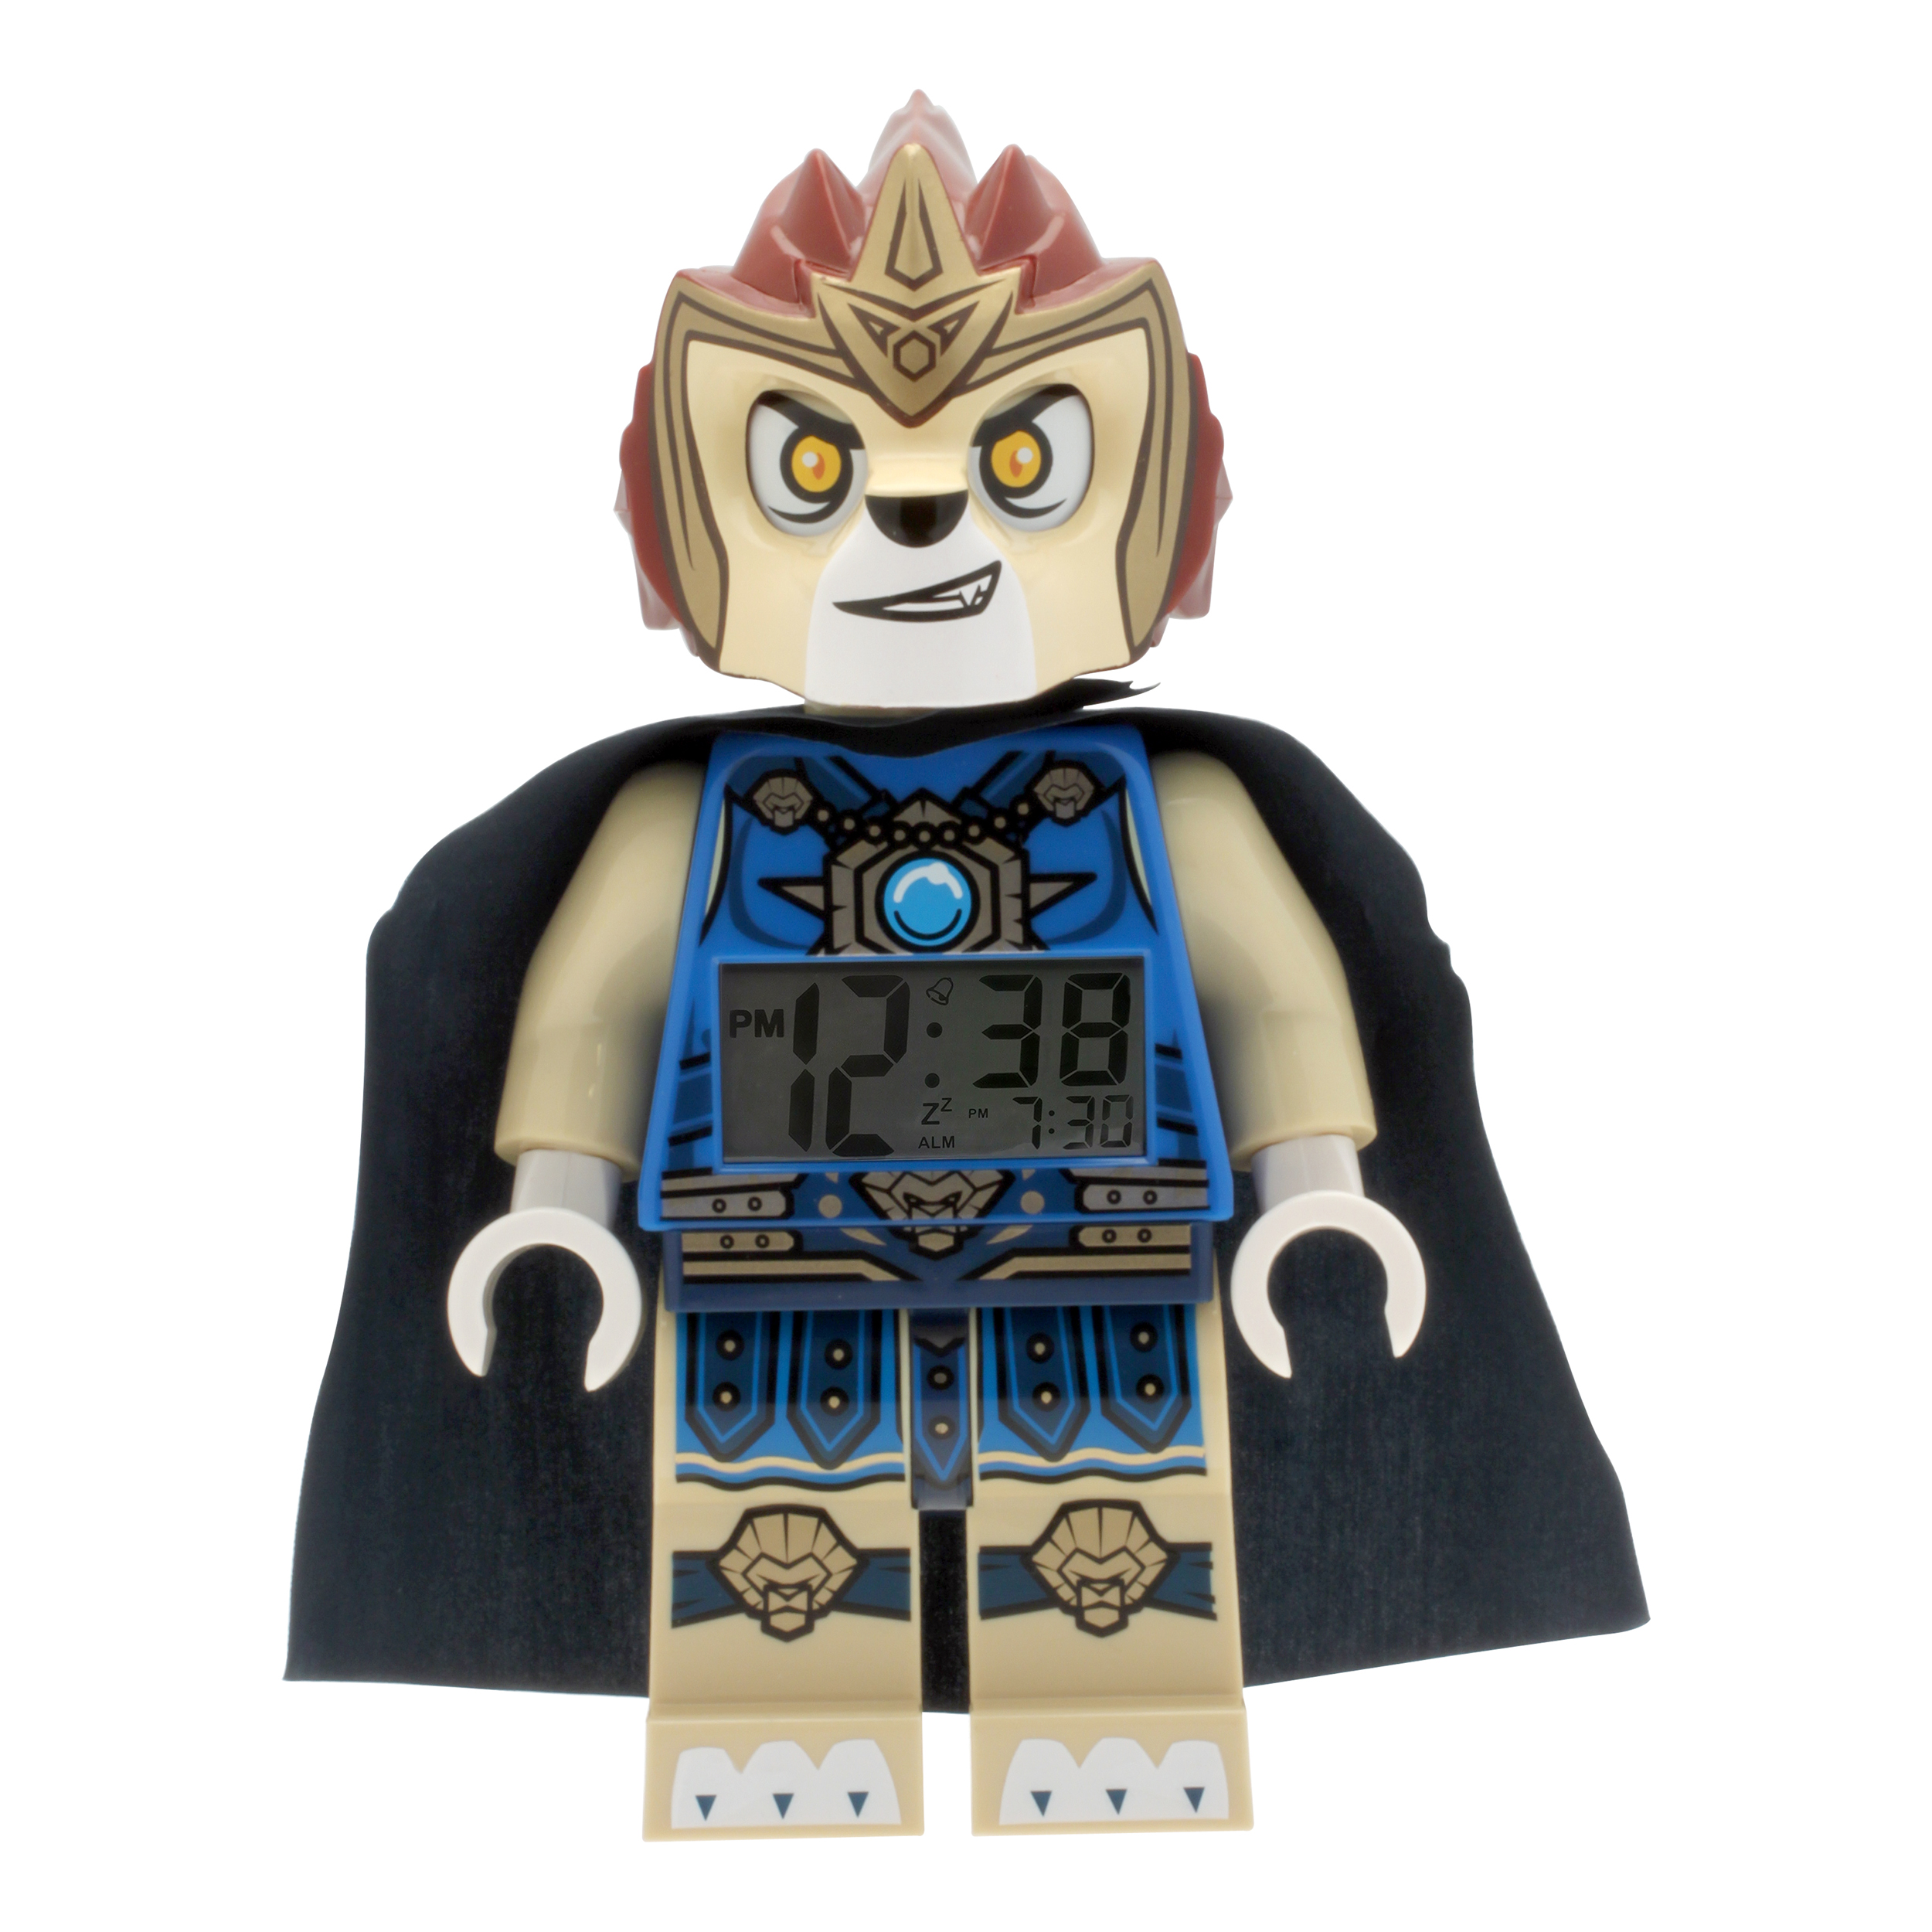 LEGO Chima Laval Kid's Moveable Minifigure Alarm Clock | eBay